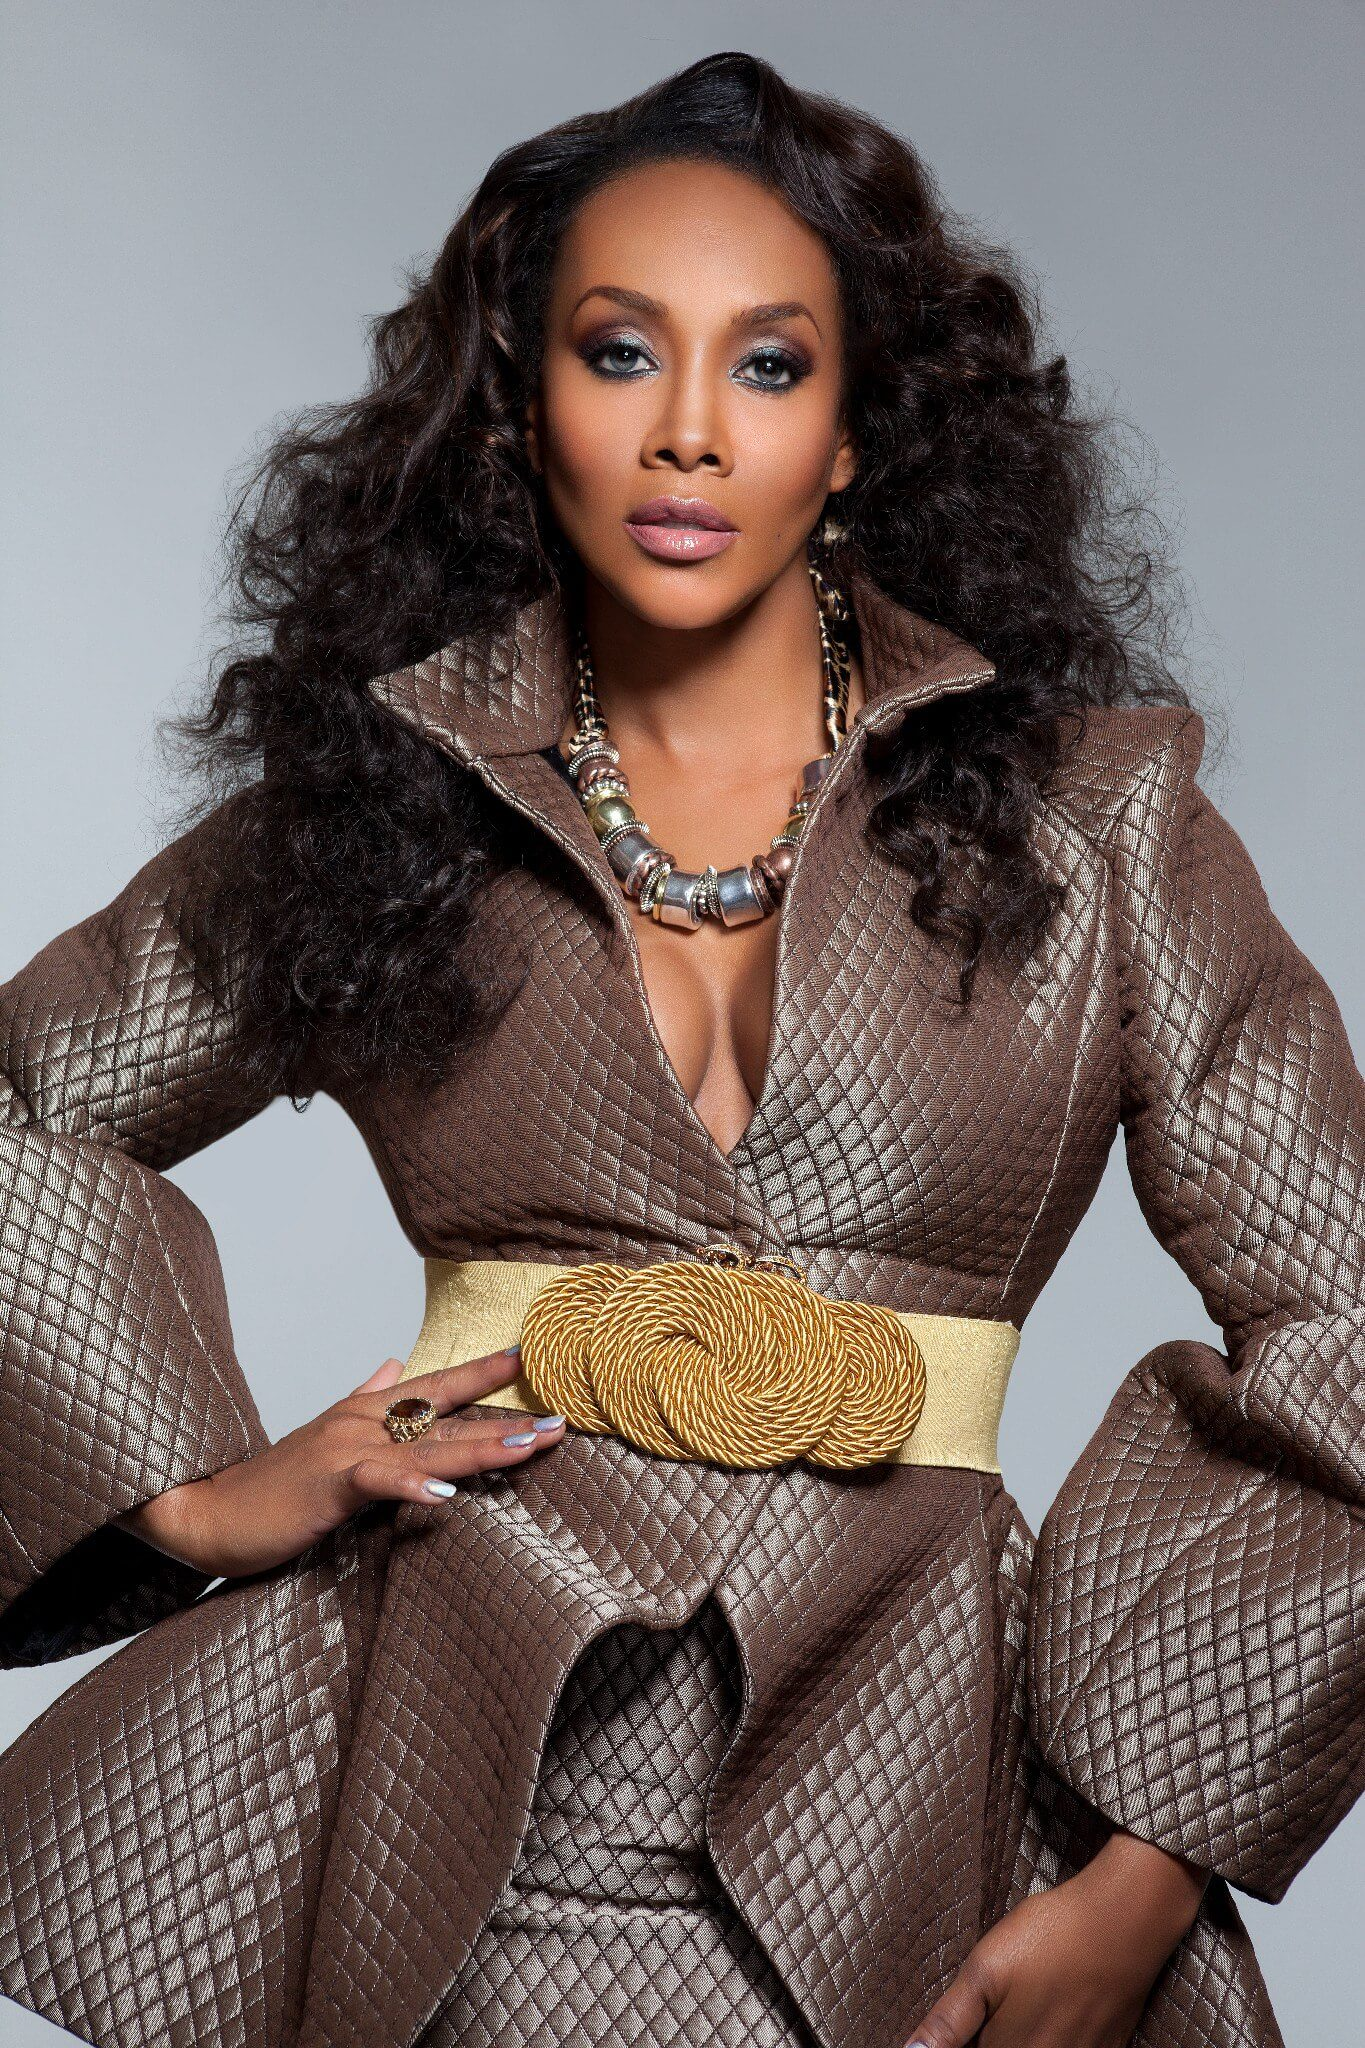 Vivica A. Fox hot cleavages picture (3)